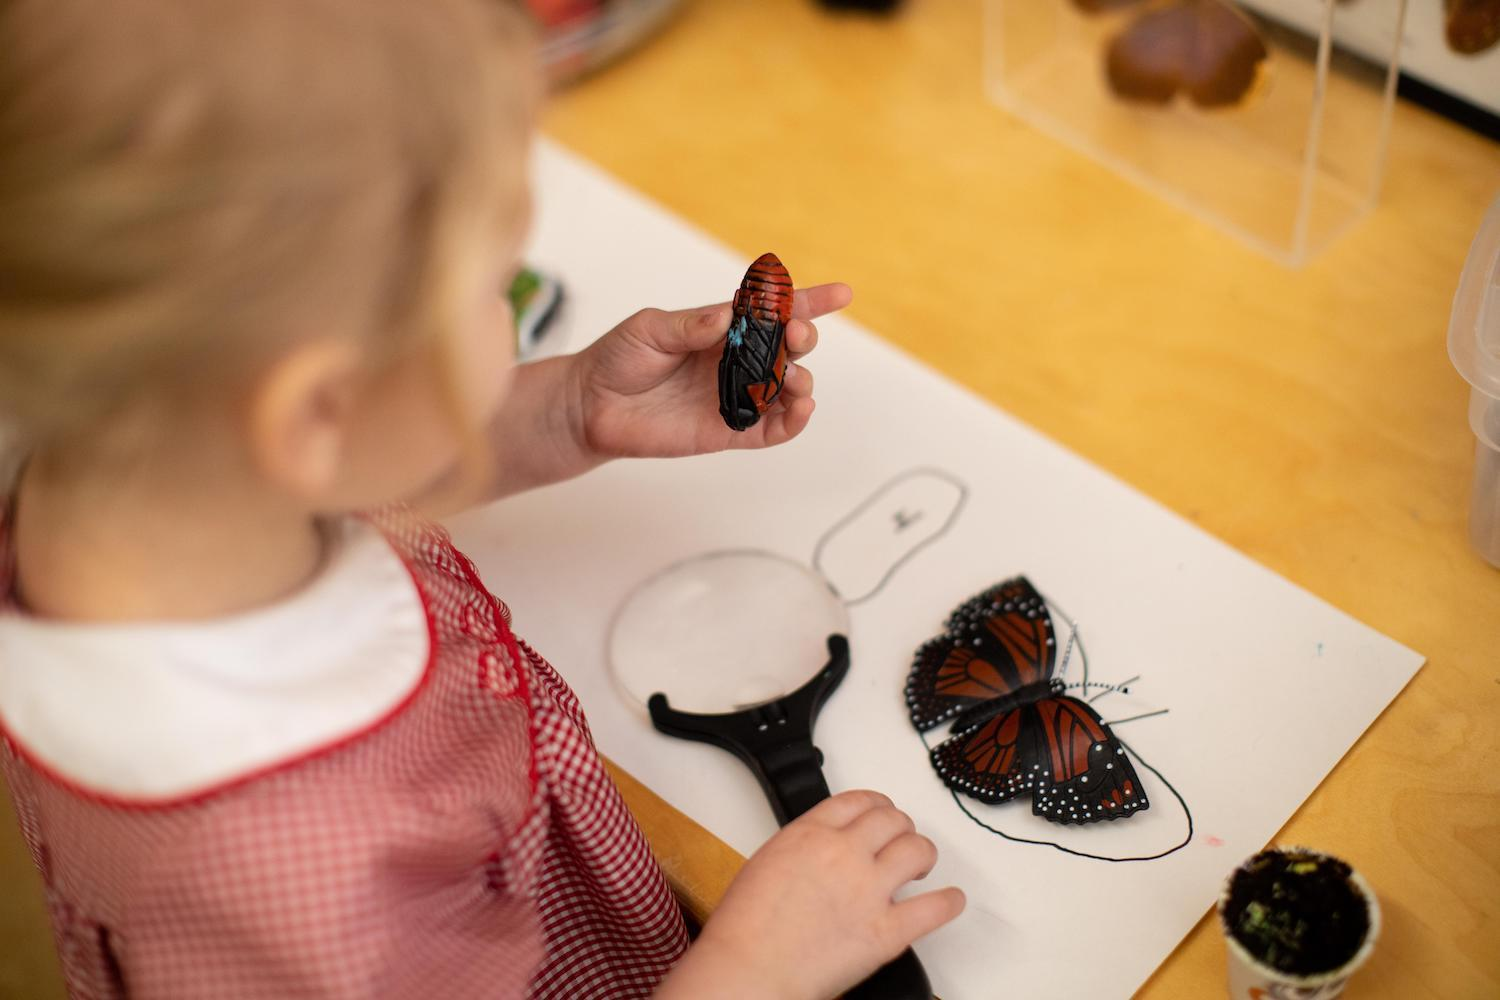 preschool student with magnifying glass and butterfly